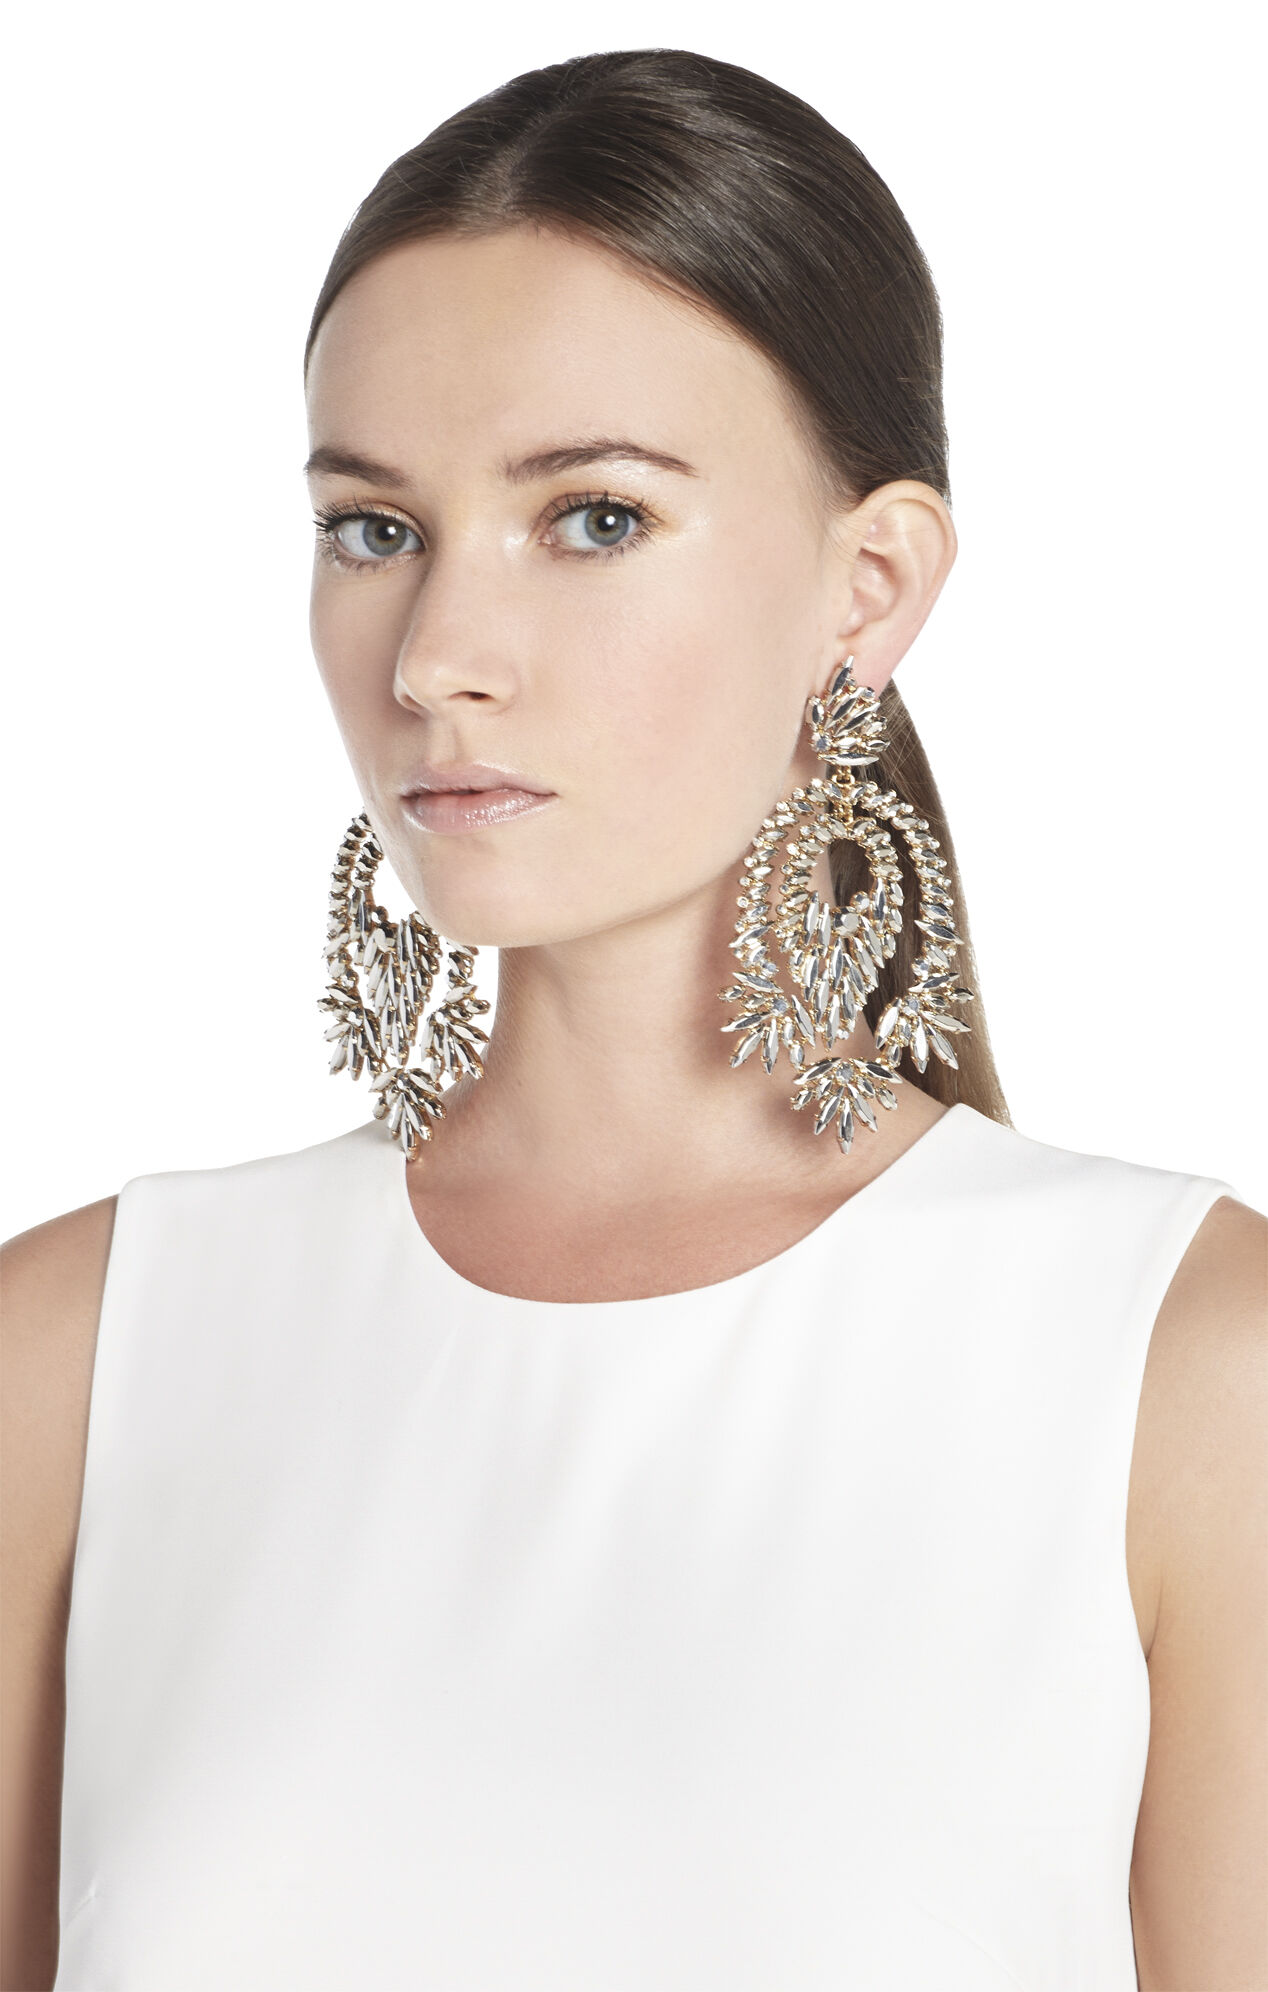 BCBGMAXAZRIA Metallic Stone Statement Earrings – Oversized Chandelier Earrings